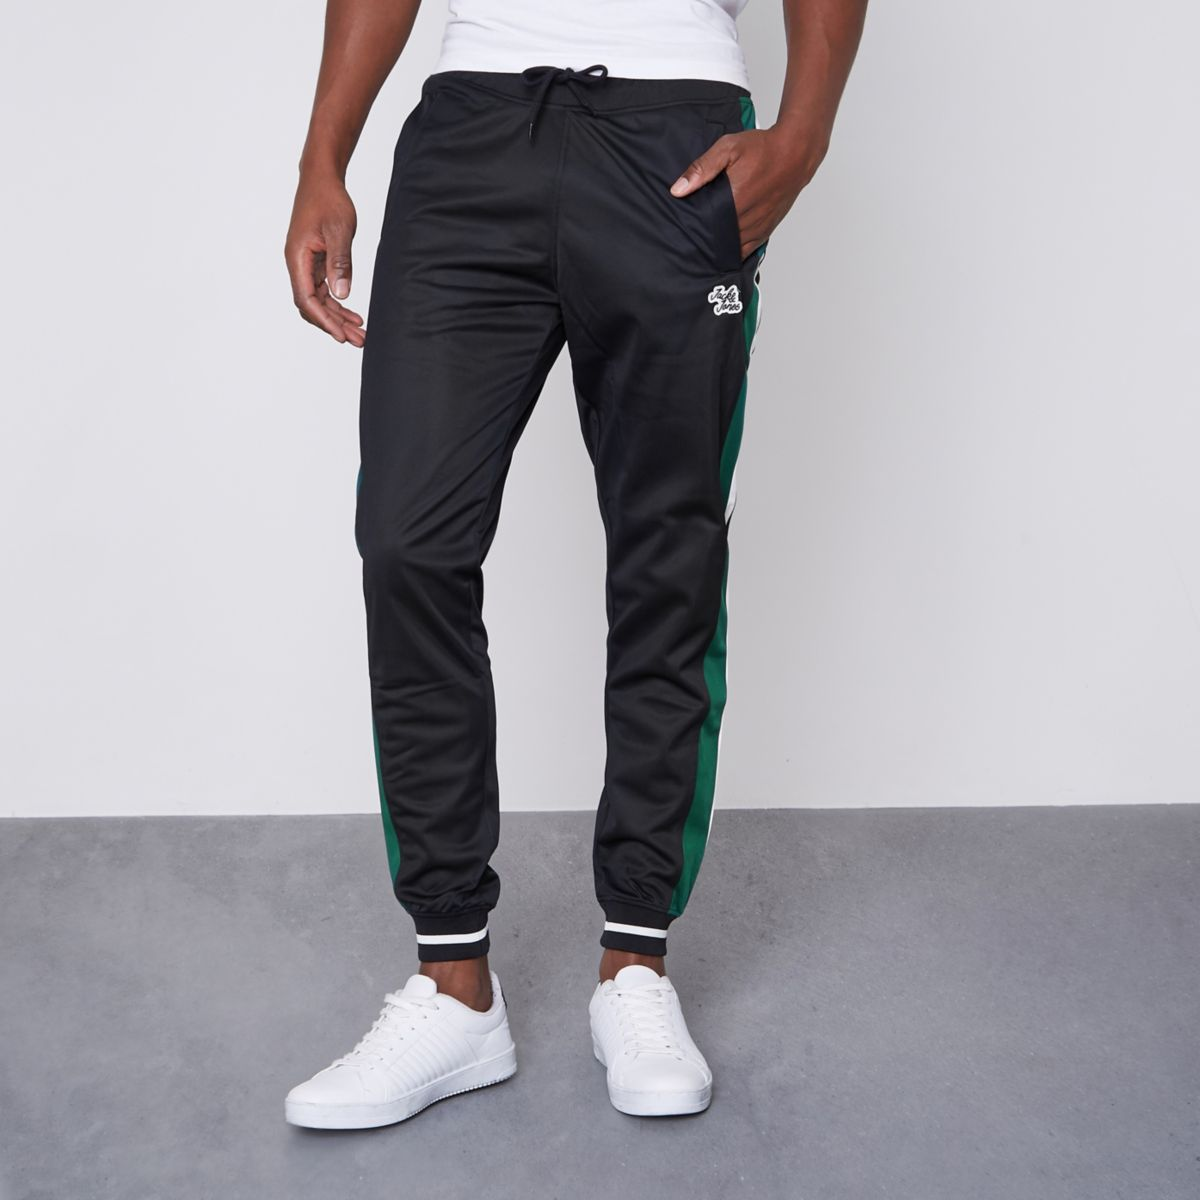 Jack & Jones – Schwarze Jogginghose